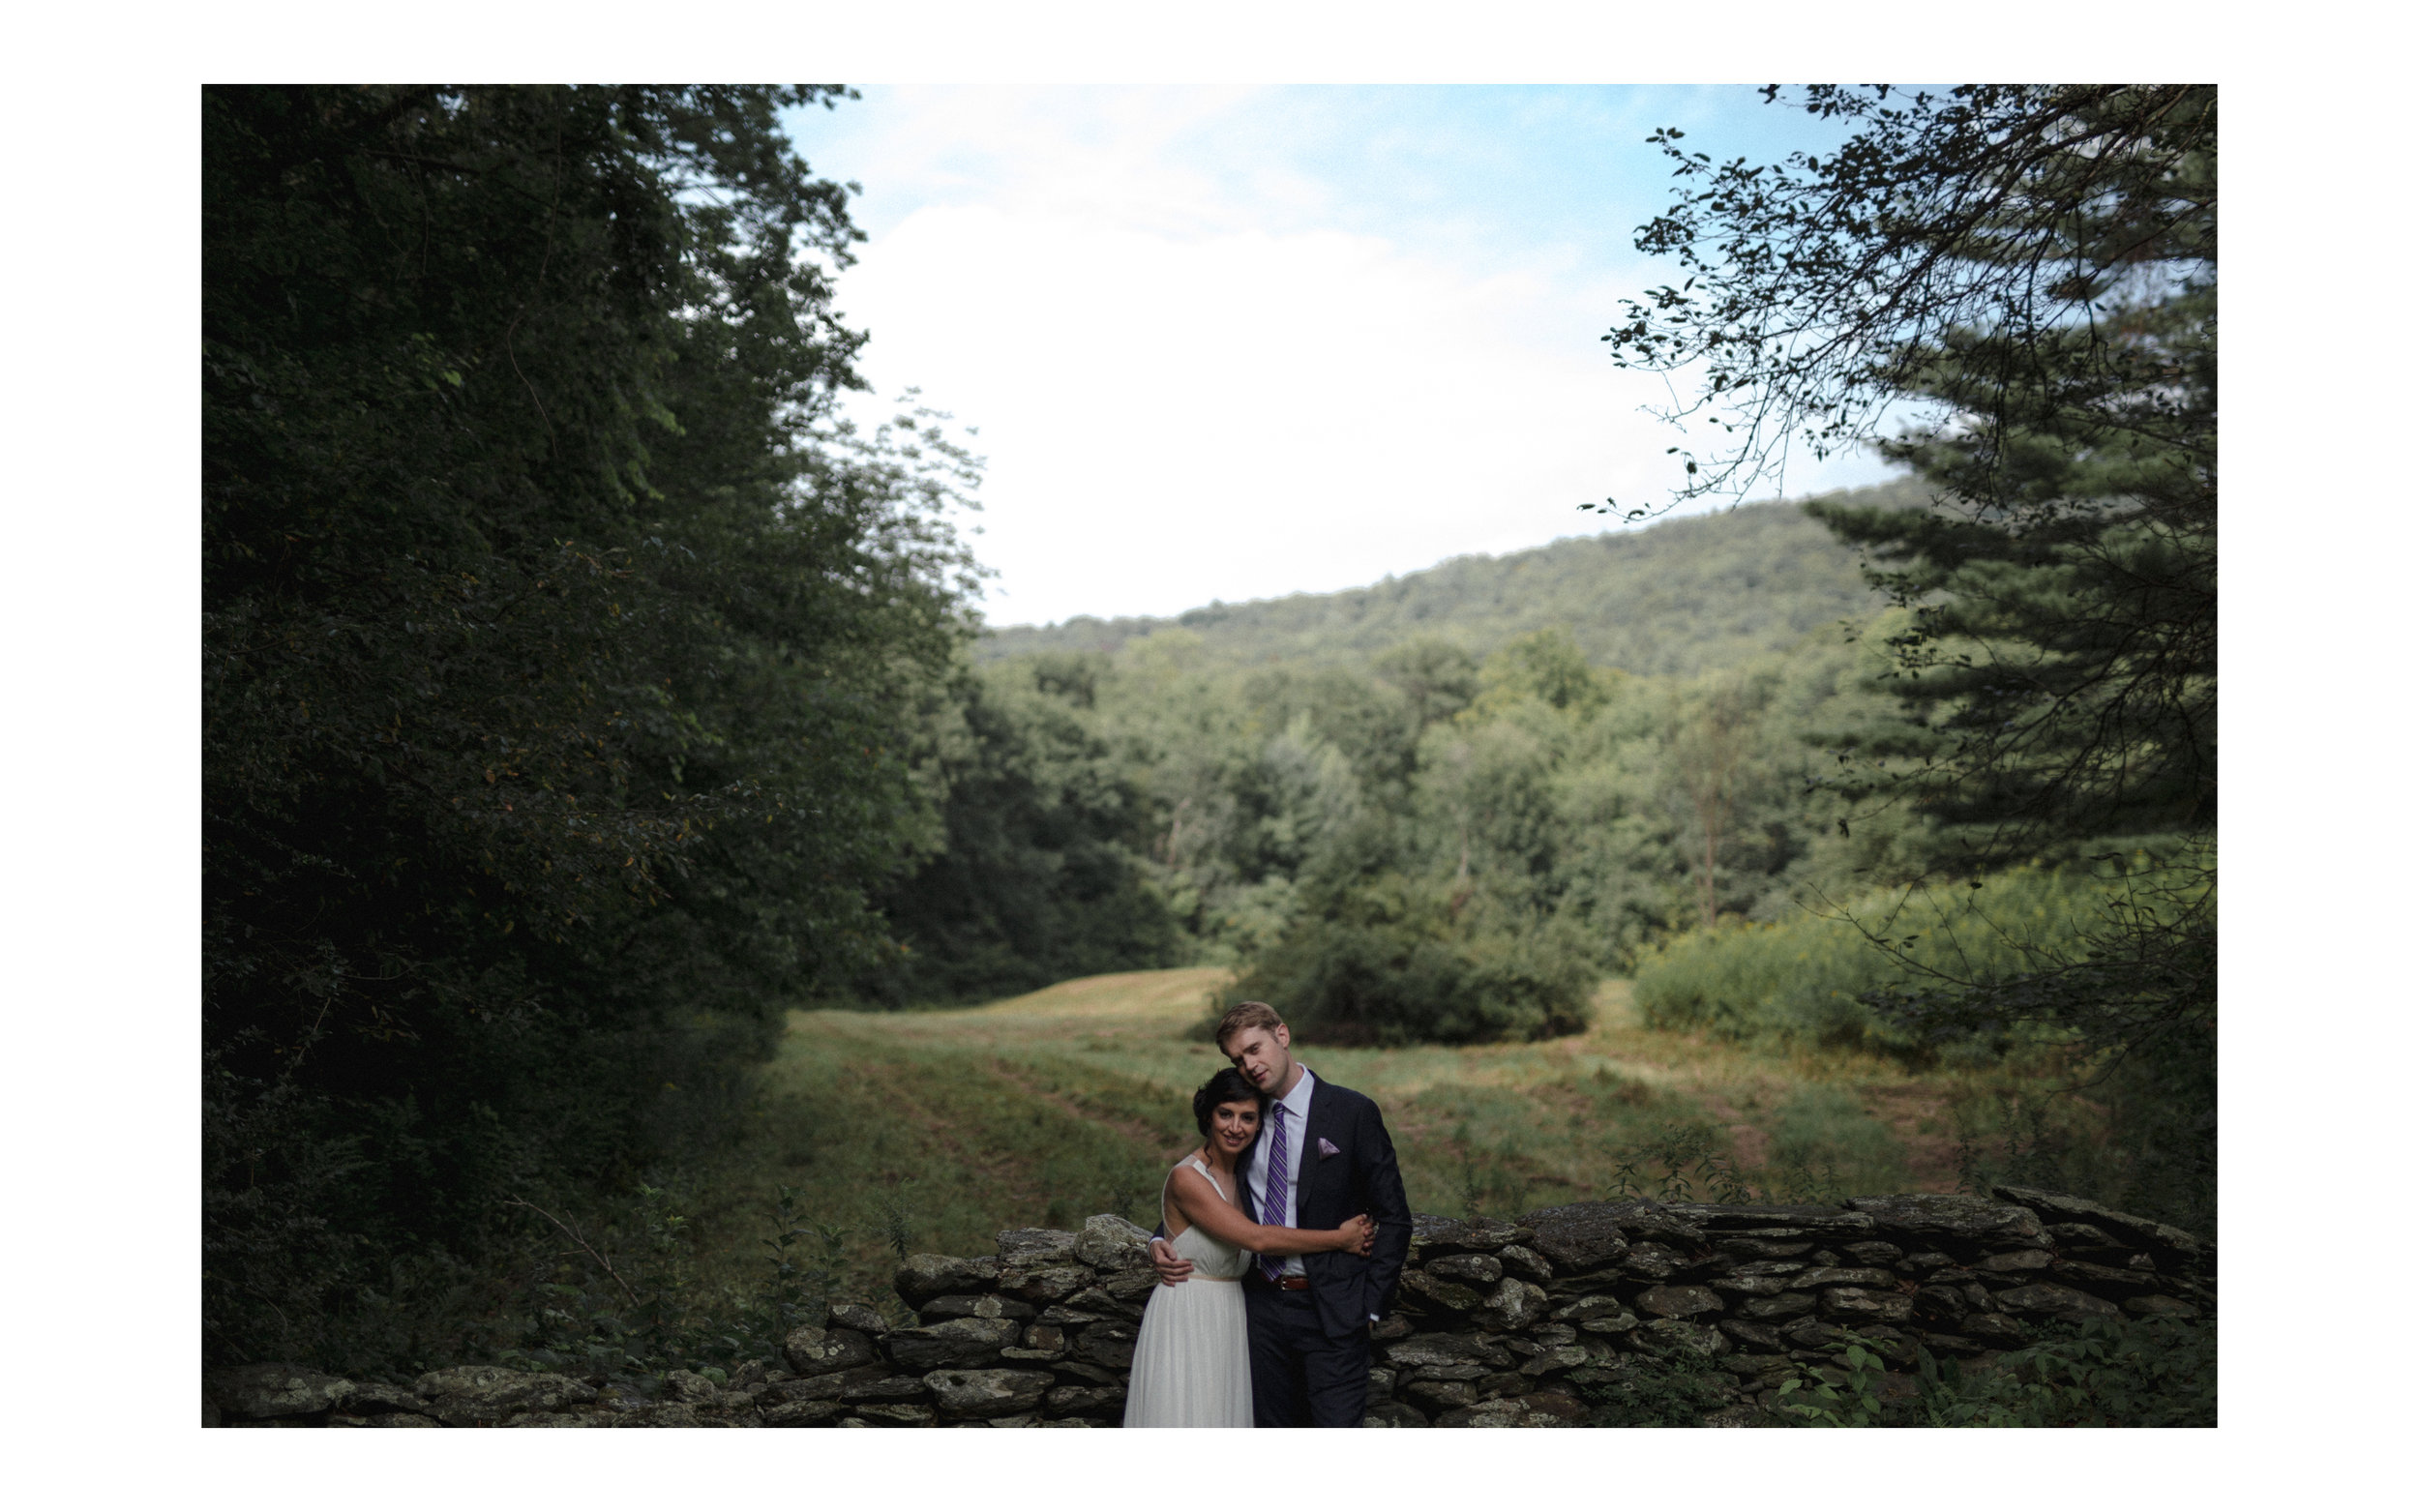 Berkshires Wedding Fine Art Wedding Photographer_Meg Haley Photographs_010.jpg